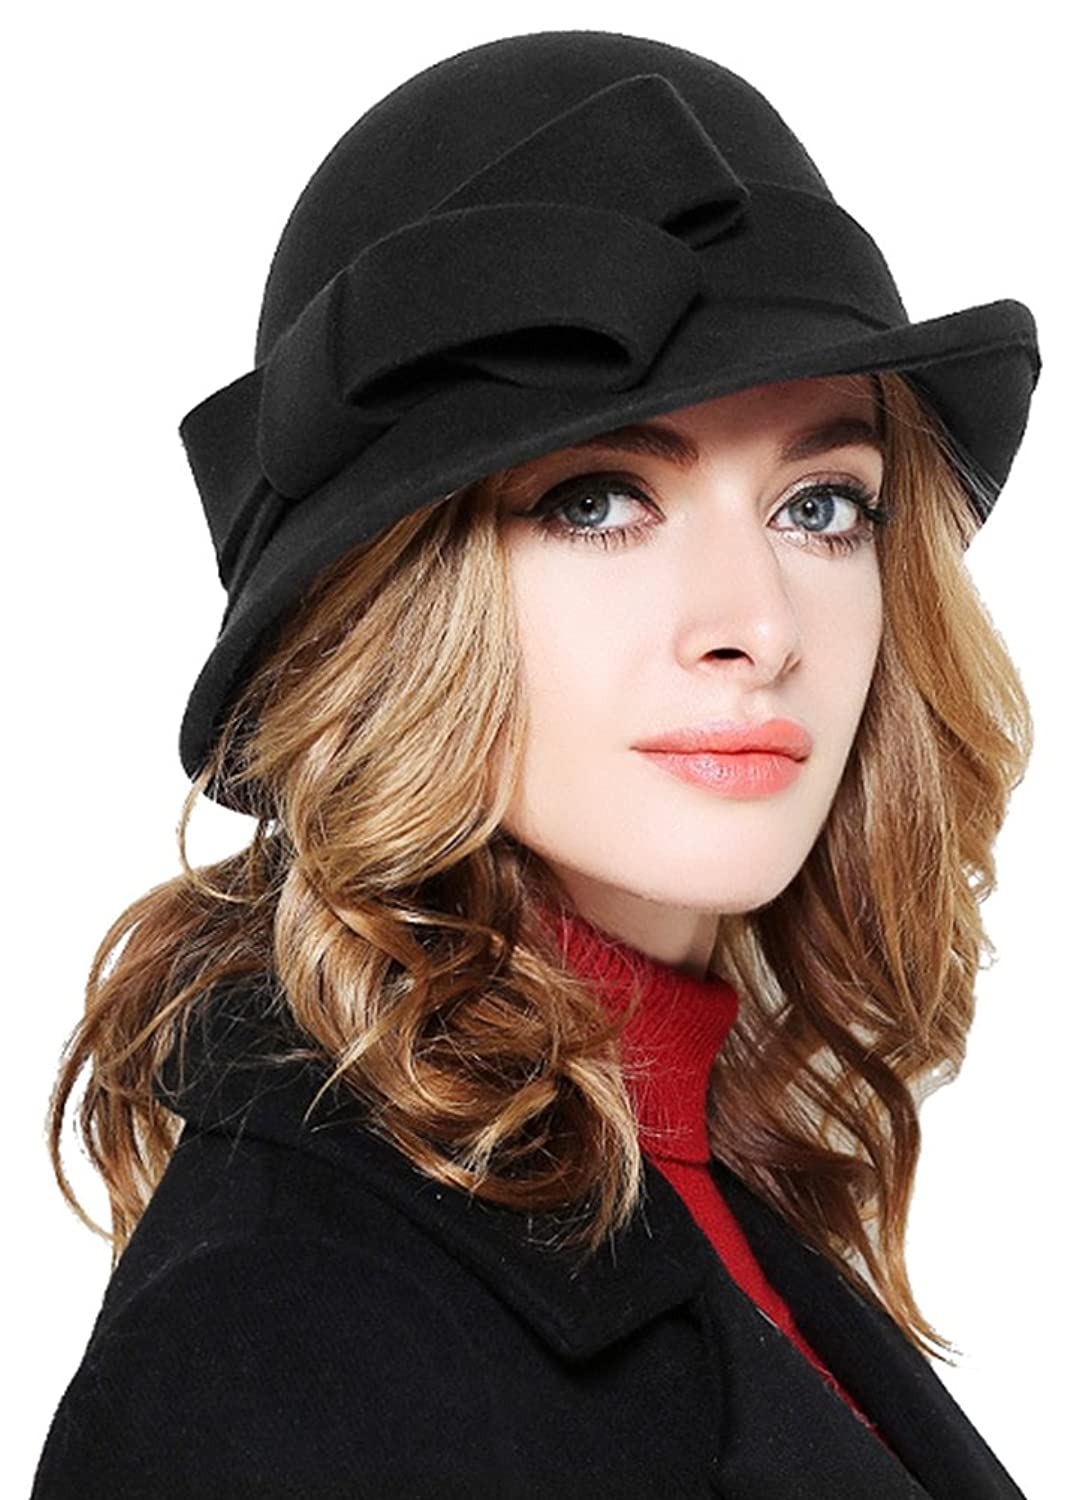 Agent Peggy Carter Costume, Dress, Hats Bellady Women Solid Color Winter Hat 100% Wool Cloche Bucket with Bow Accent $21.99 AT vintagedancer.com